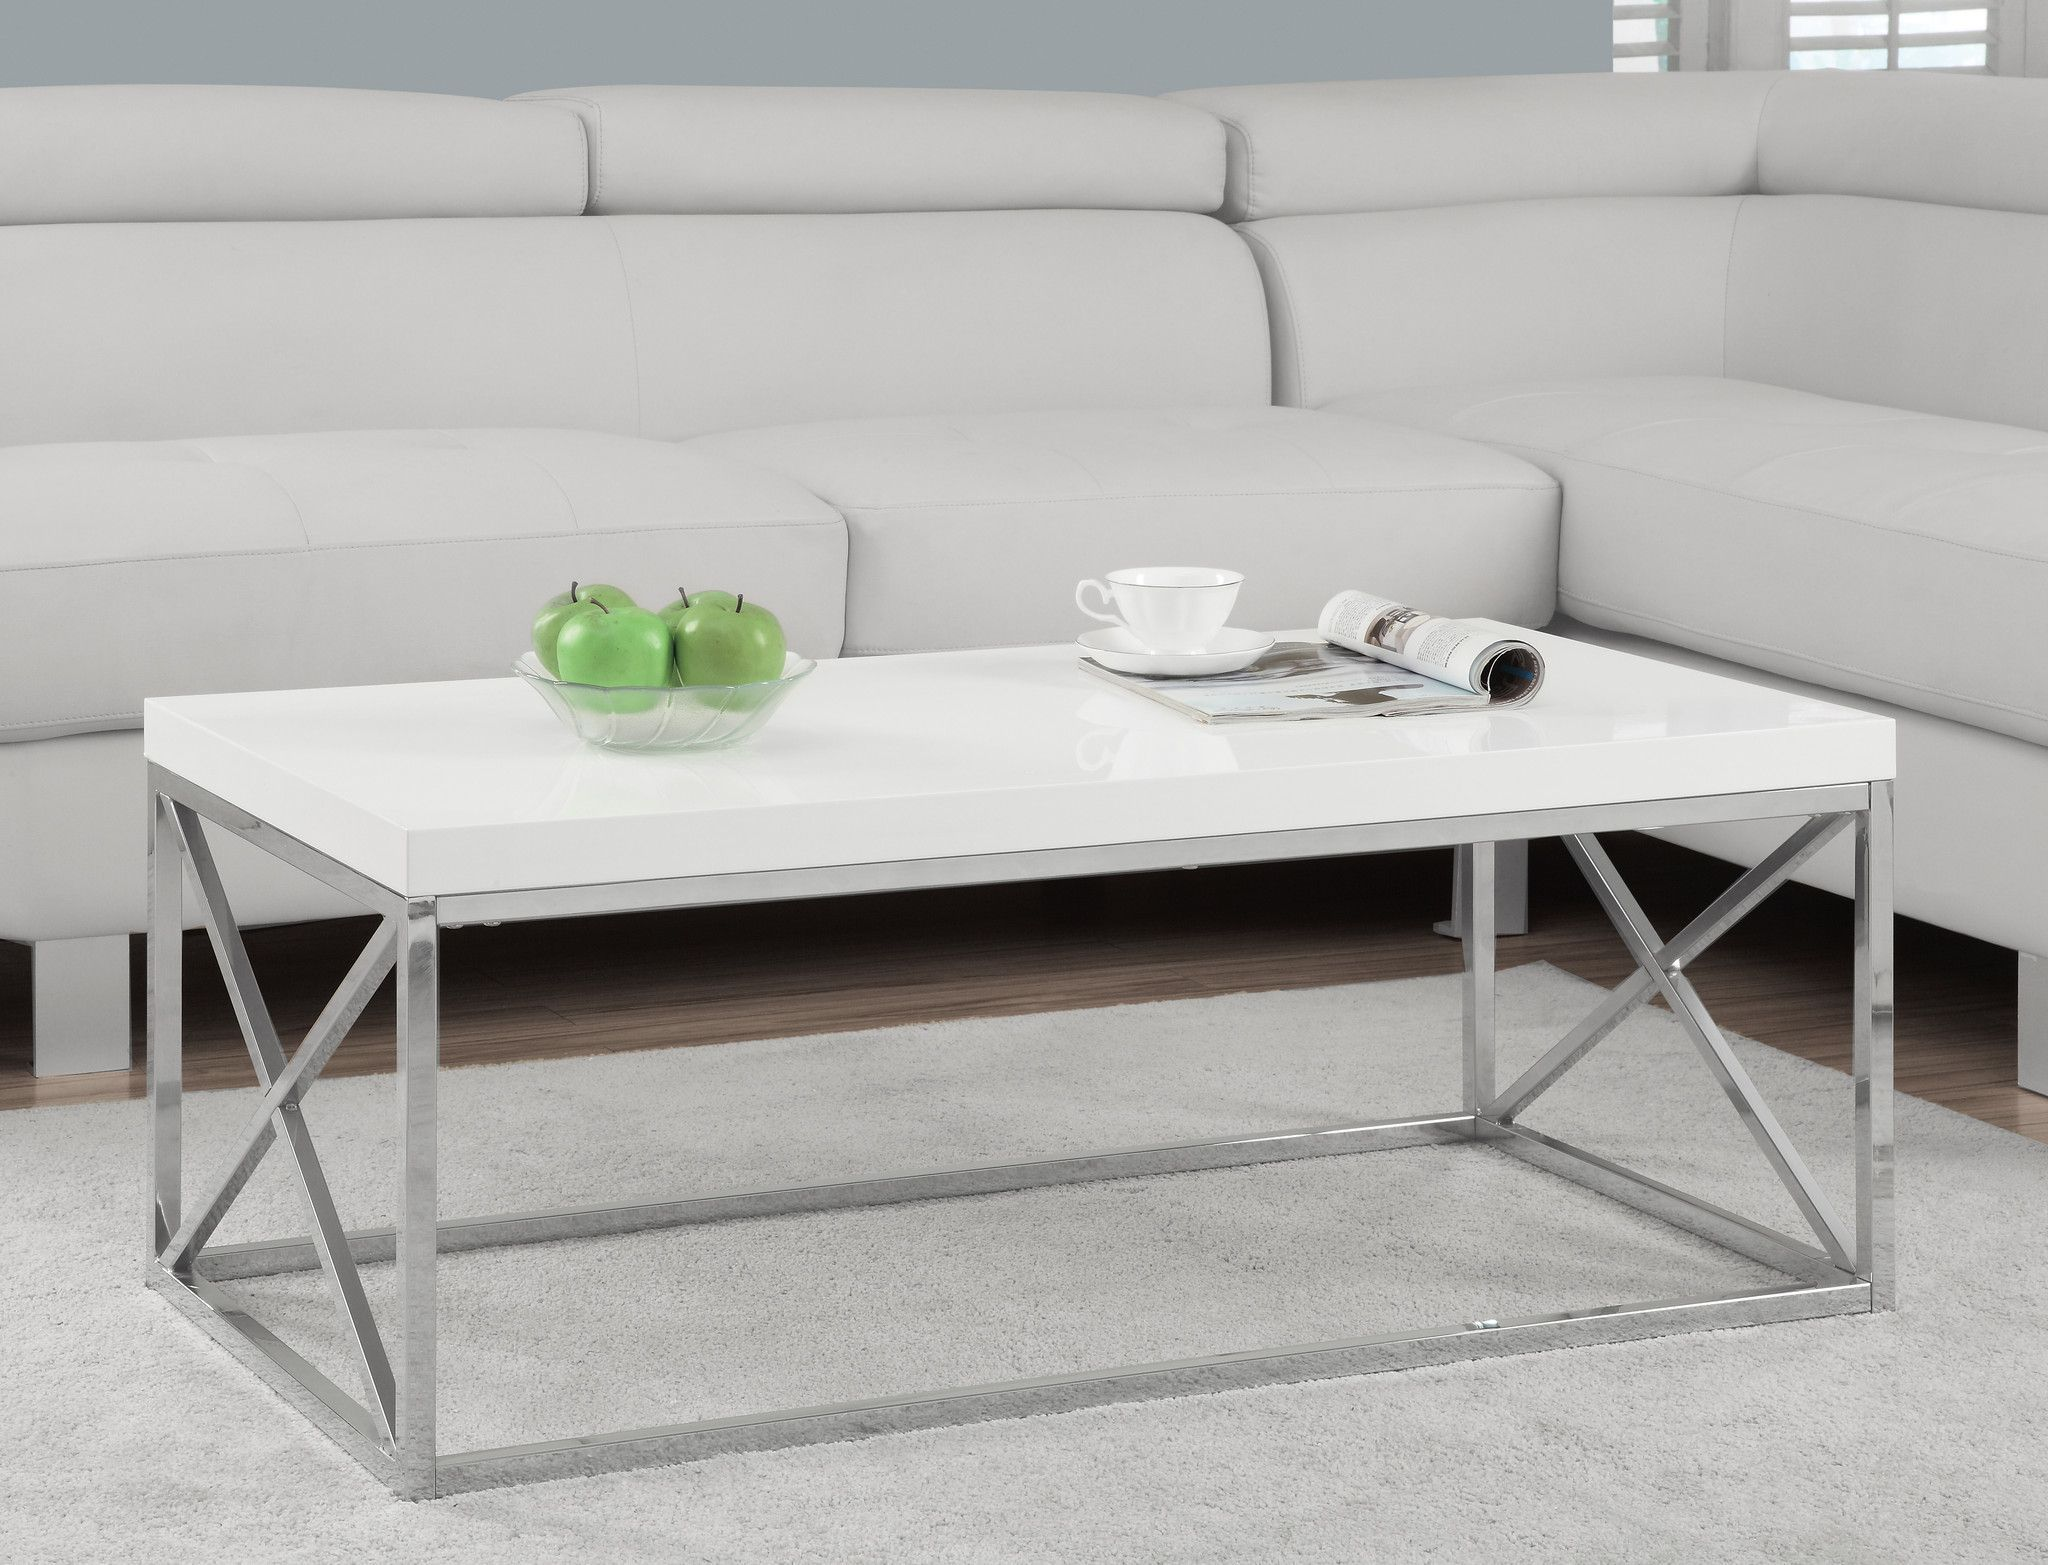 Coffee Table Glossy White With Chrome Metal Living Room Coffee Table Coffee Table Cool Coffee Tables [ 1565 x 2048 Pixel ]